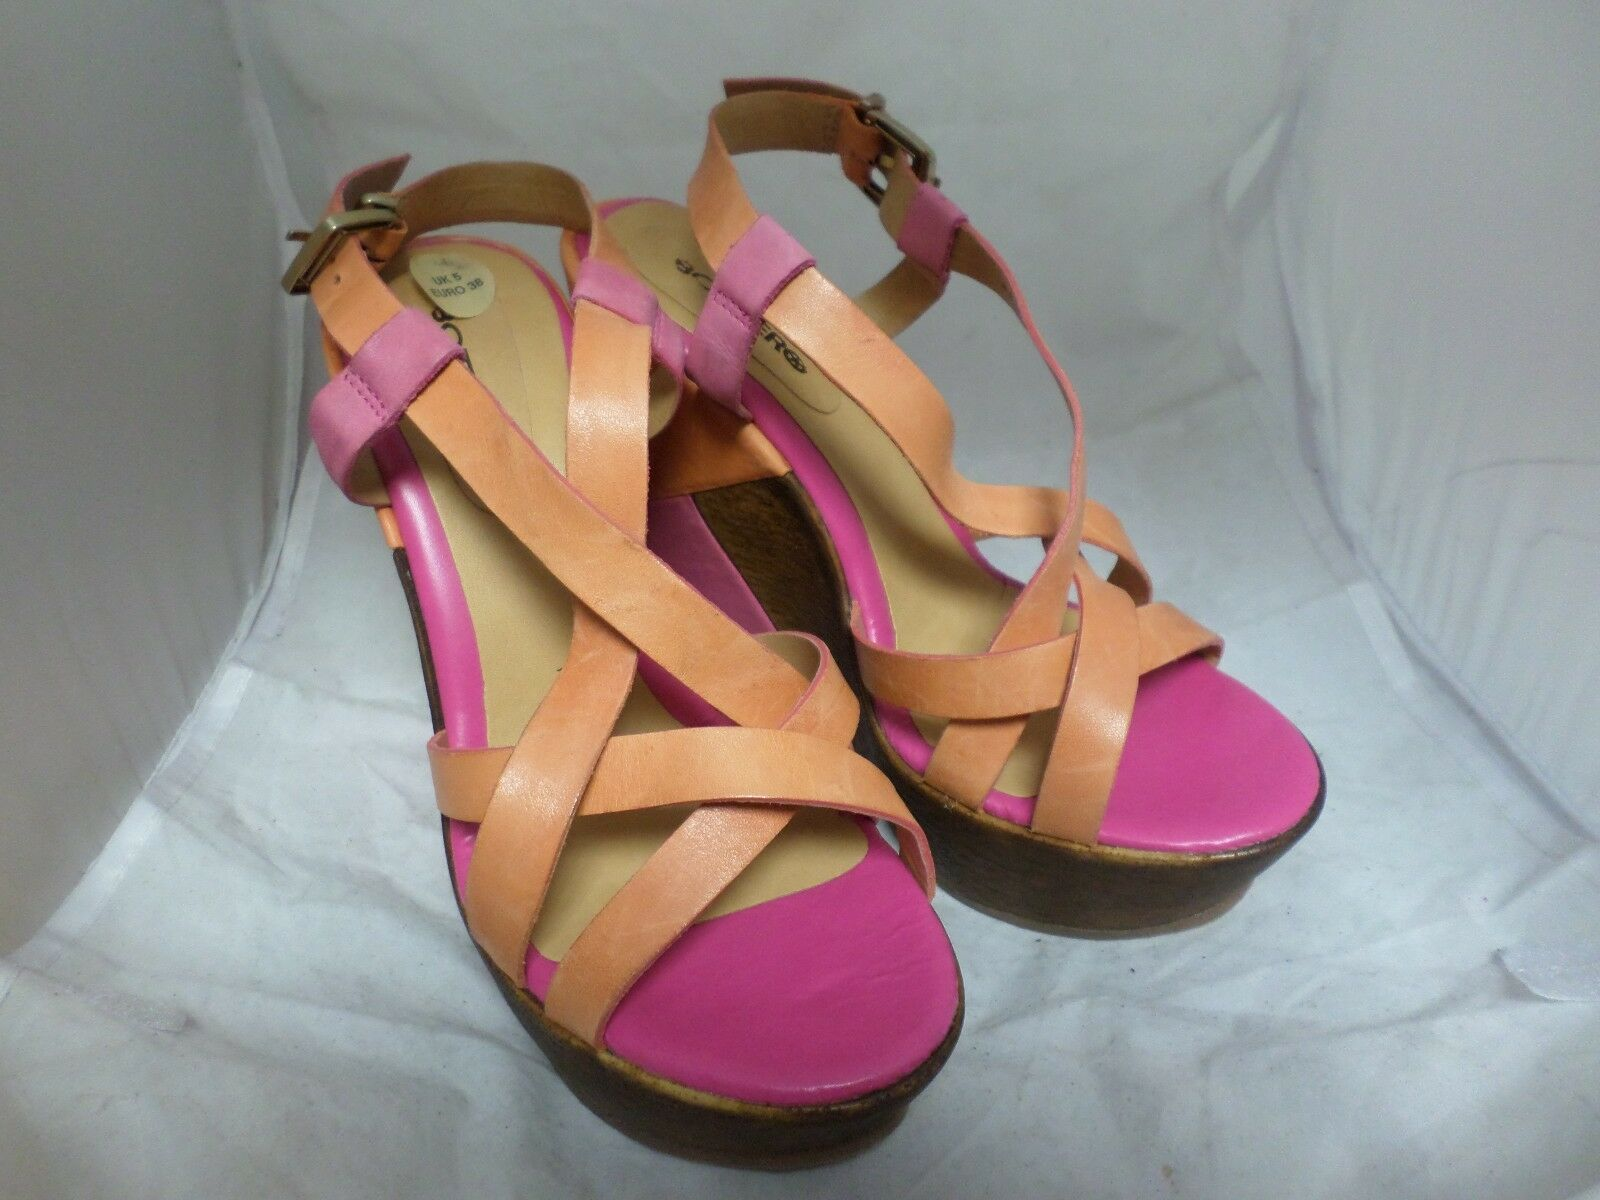 Bottero Ultra Wedge Sandale Pink/Orange 19 UK 5 EU 38 LN05 19 Pink/Orange 68a846